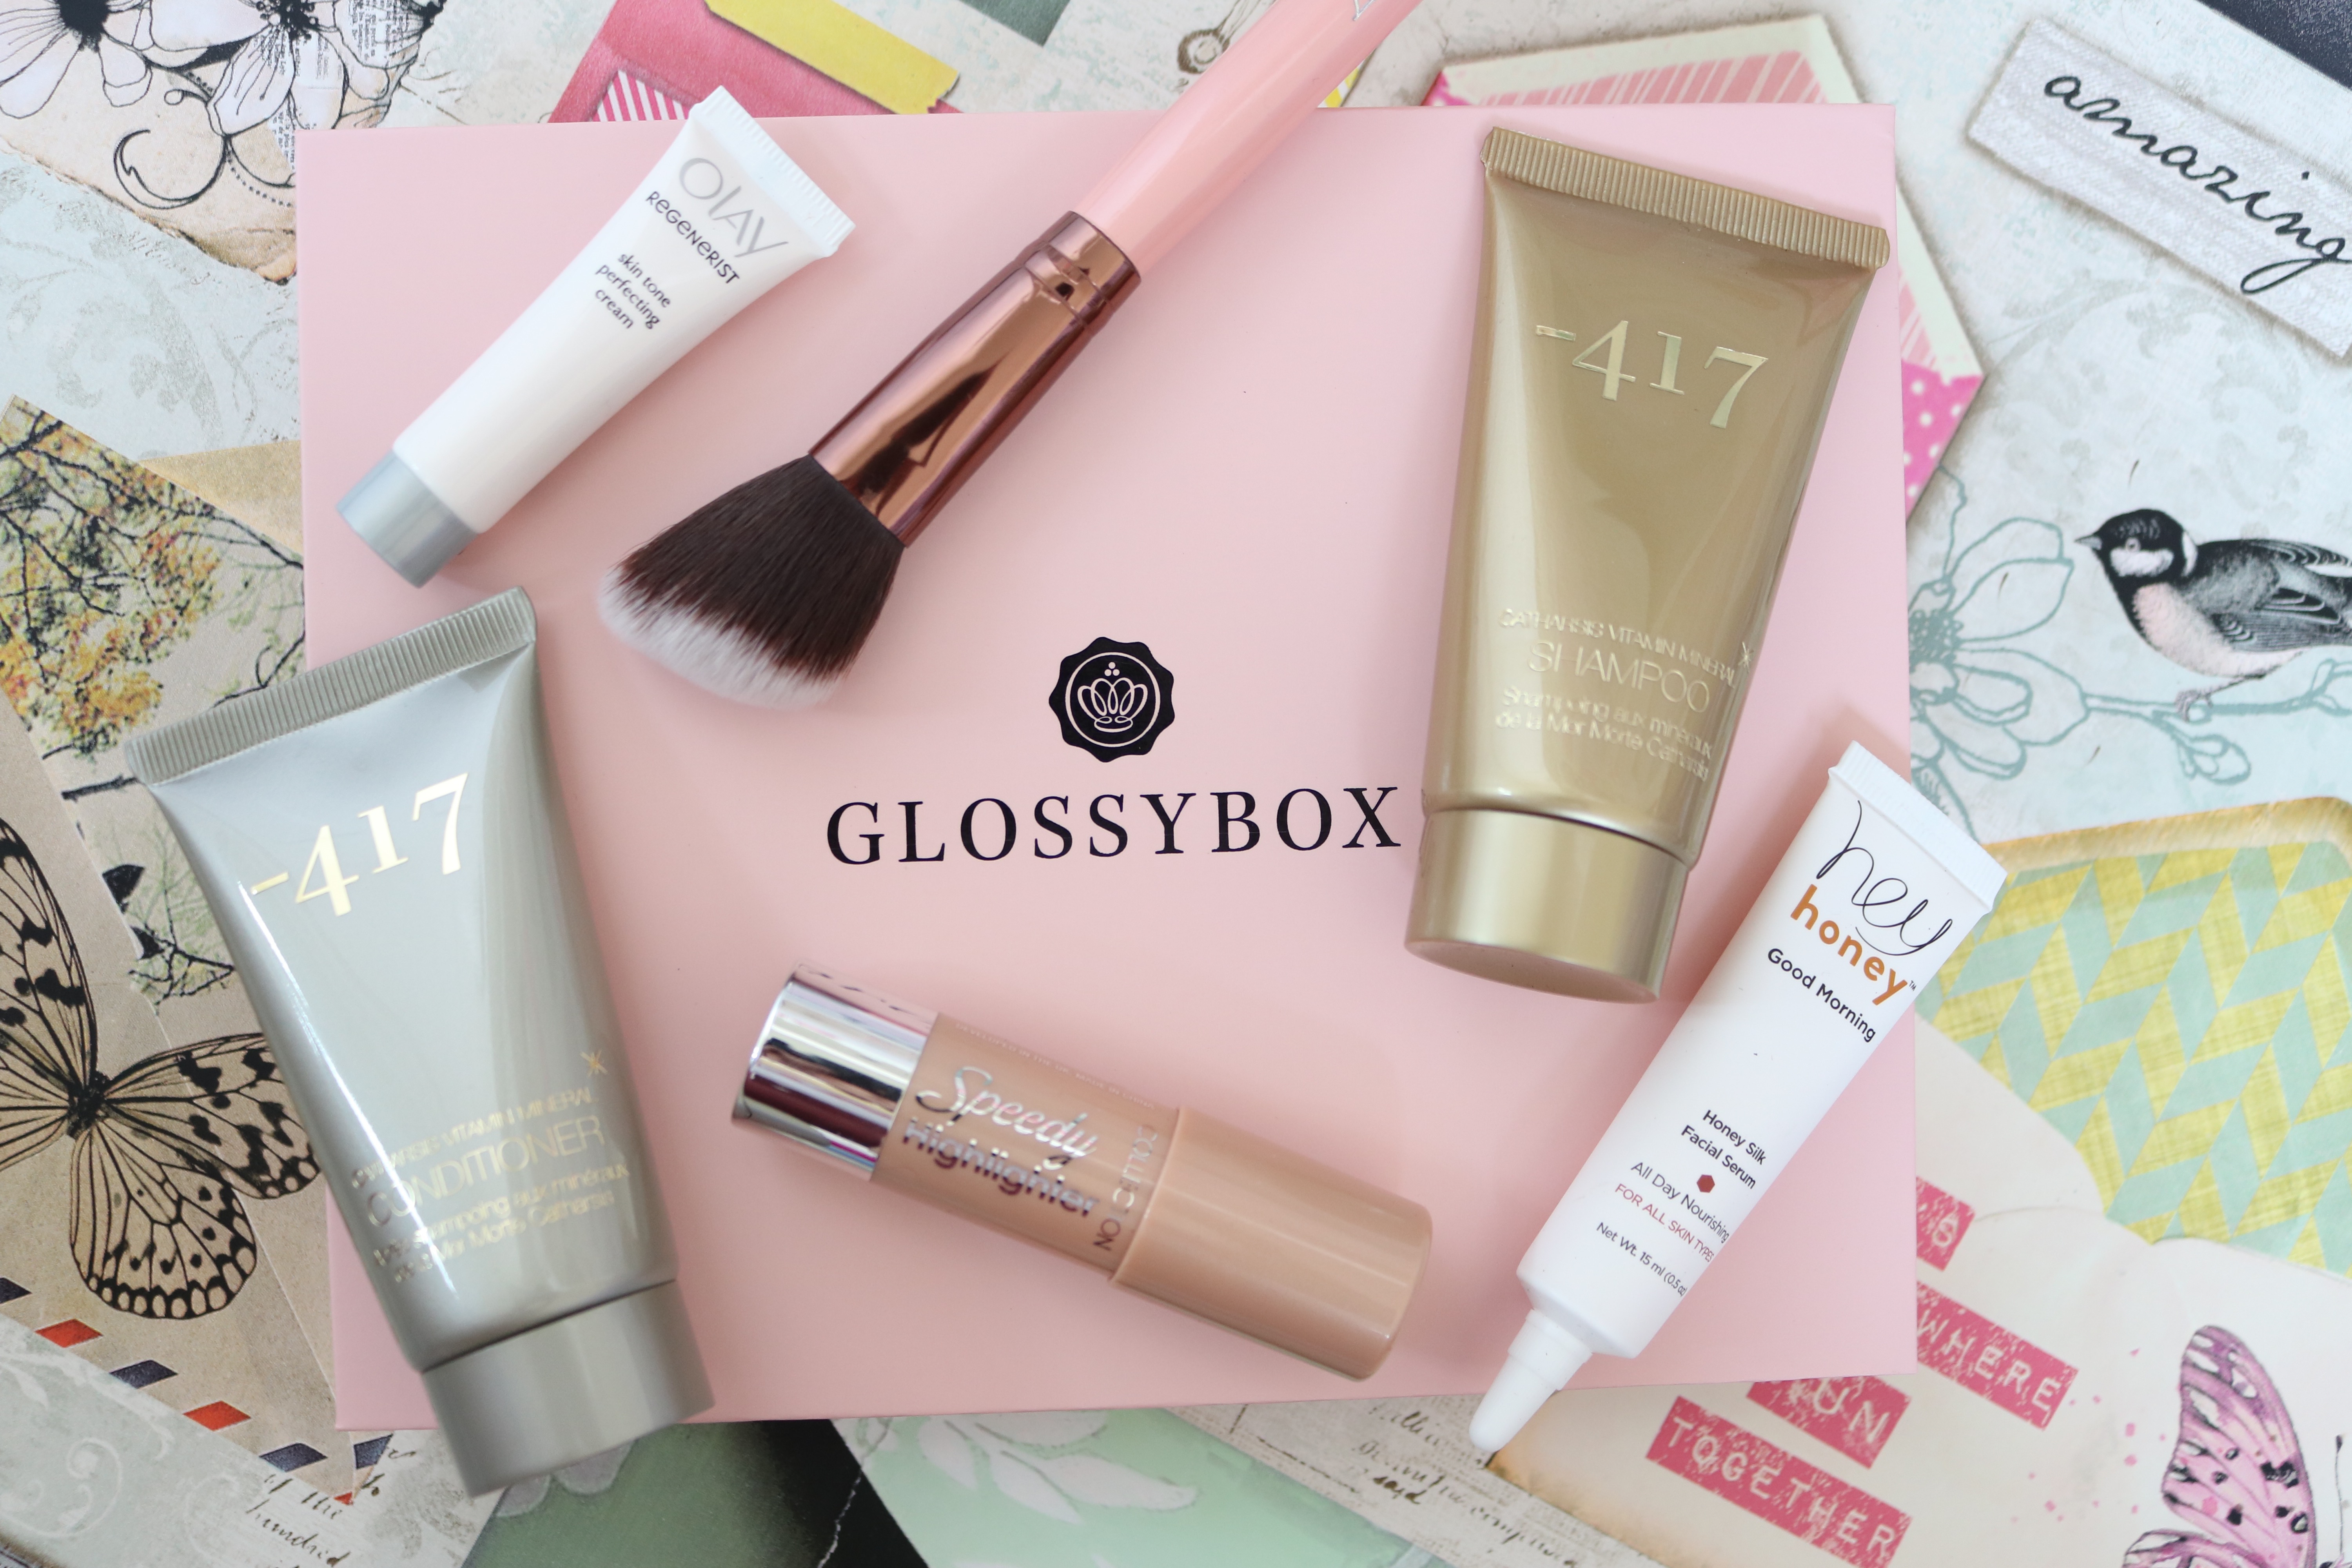 Glossybox March 2016 Get Glowing Jodetopia Luxie Olay Collection -417 Hey Honey